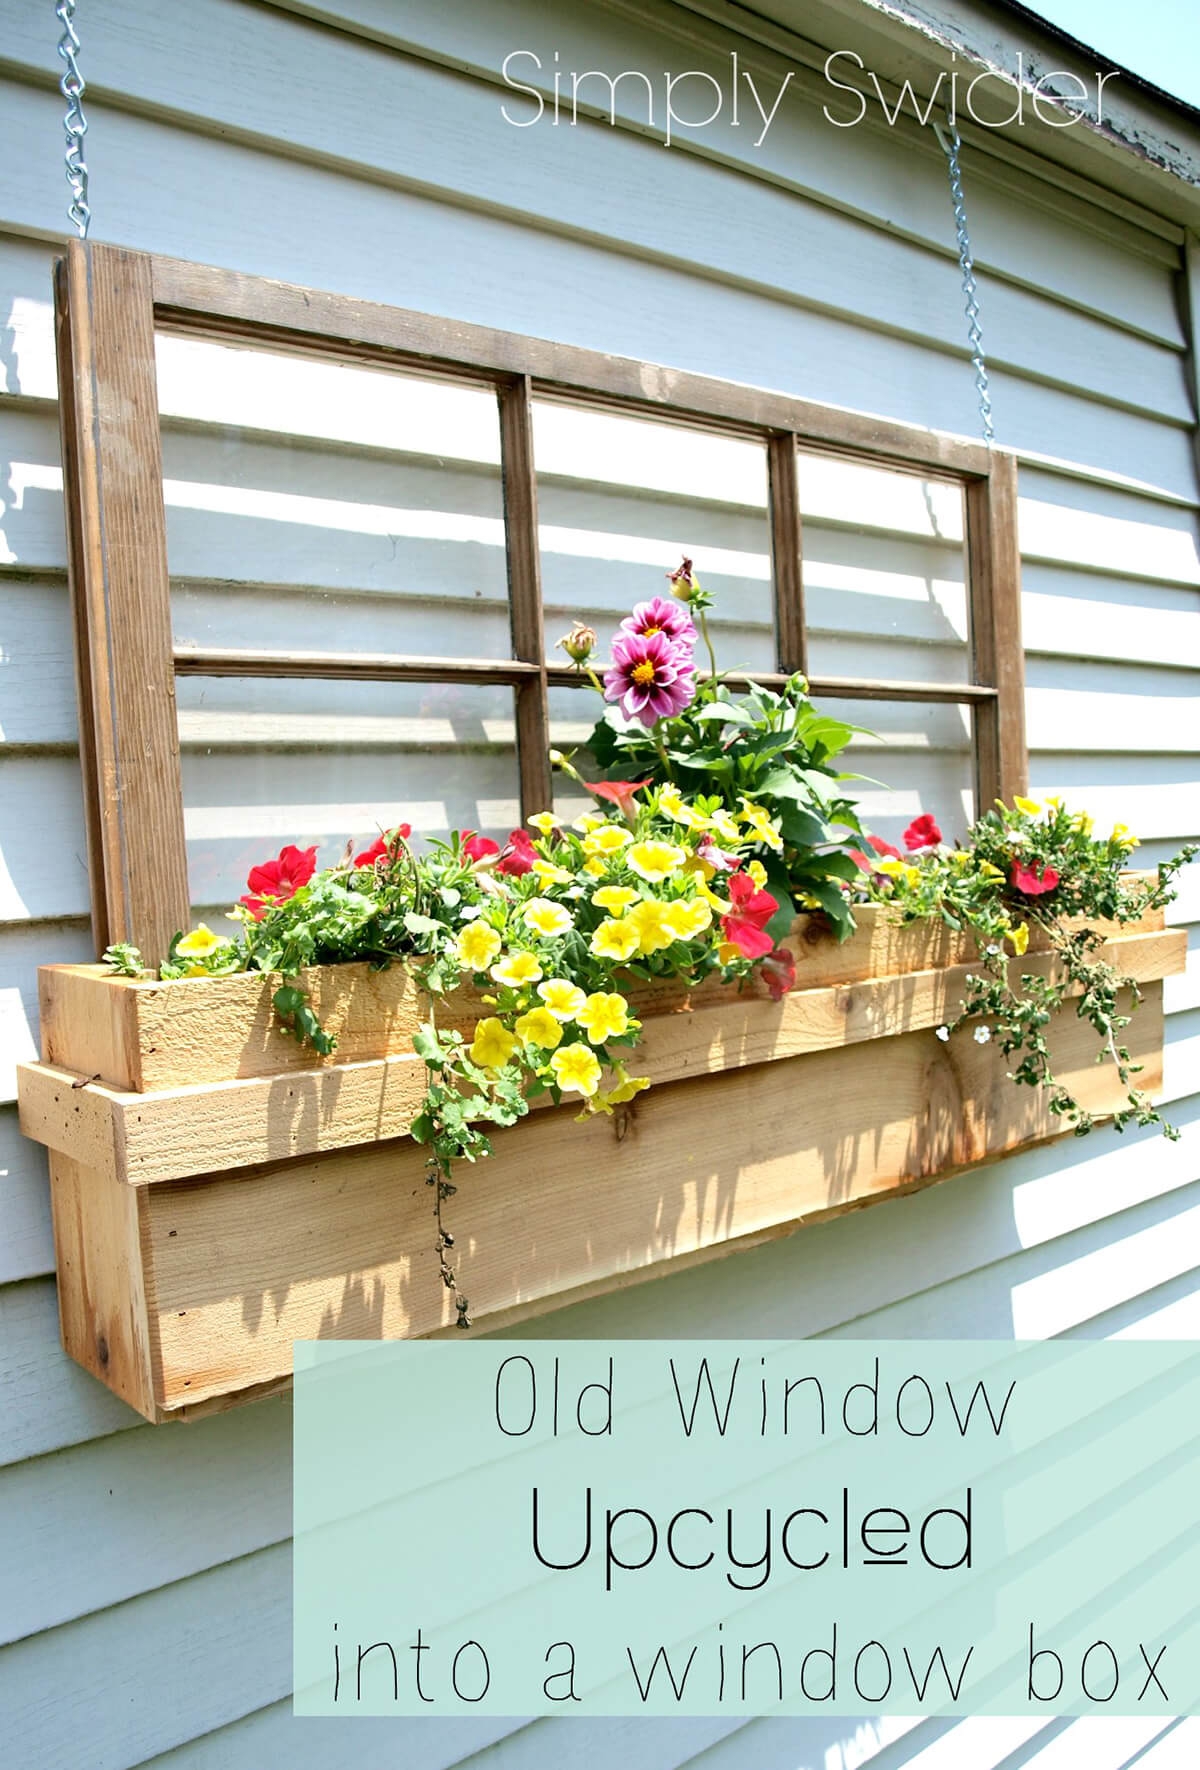 Upcycled Window Frame with Blooming Flowers